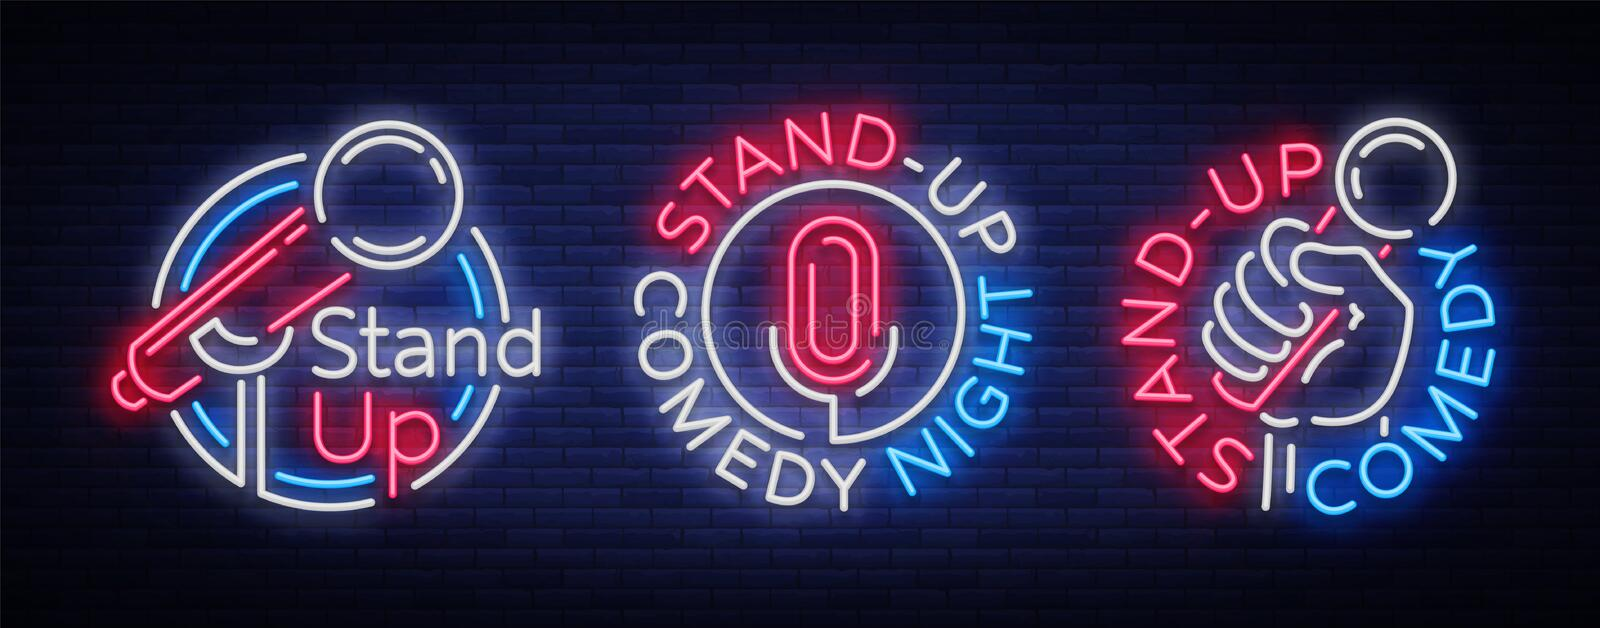 Stand Up Comedy Show is a collection of neon signage. Collection of neon logos, a symbol, a bright light banner, a neon. Style poster, bright night-time stock illustration